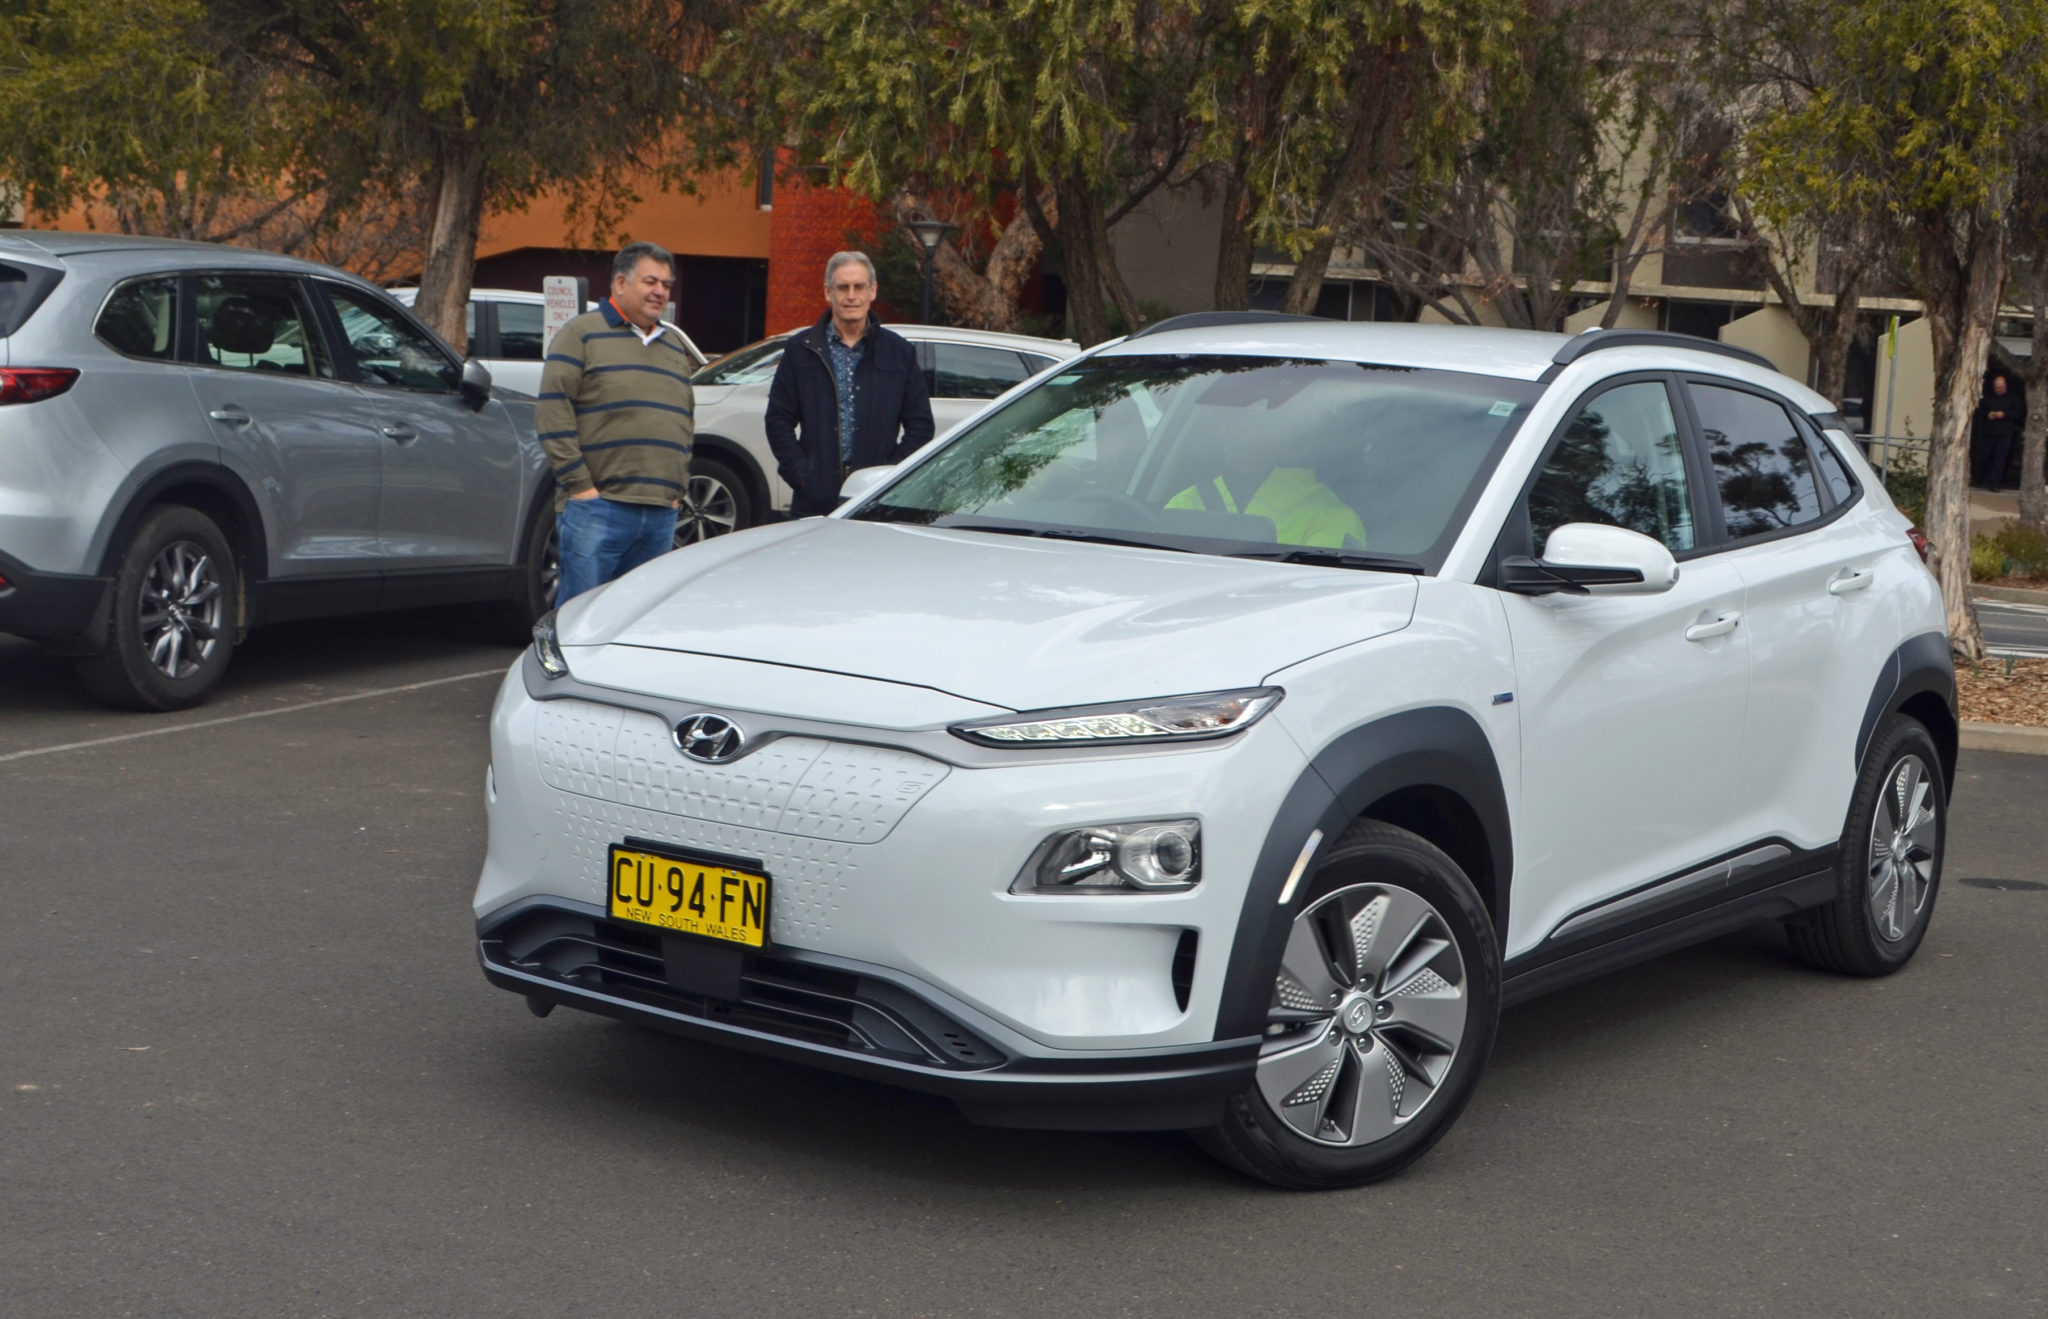 Crs Previtera and Nugent look on as parking officer Lachlan Davis takes off in the Council's first electric vehicle. The Hyundai Kona